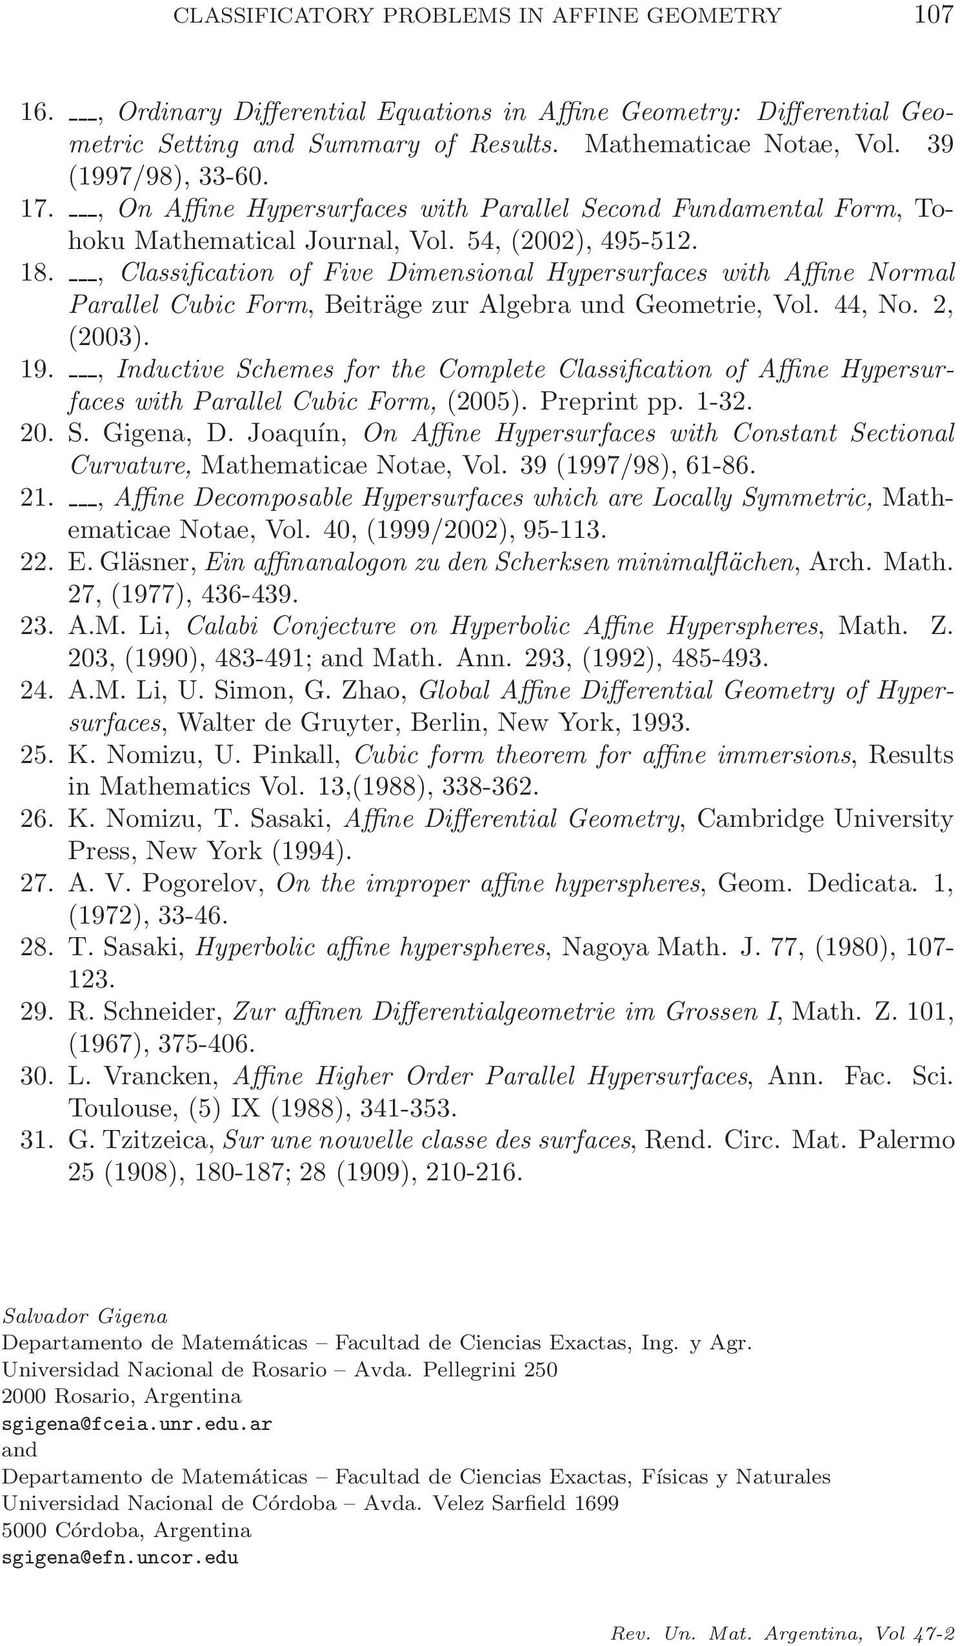 , Classification of Five Dimensional Hypersurfaces with Affine Normal Parallel Cubic Form, Beiträge zur Algebra und Geometrie, Vol. 44, No. 2, (2003). 19.